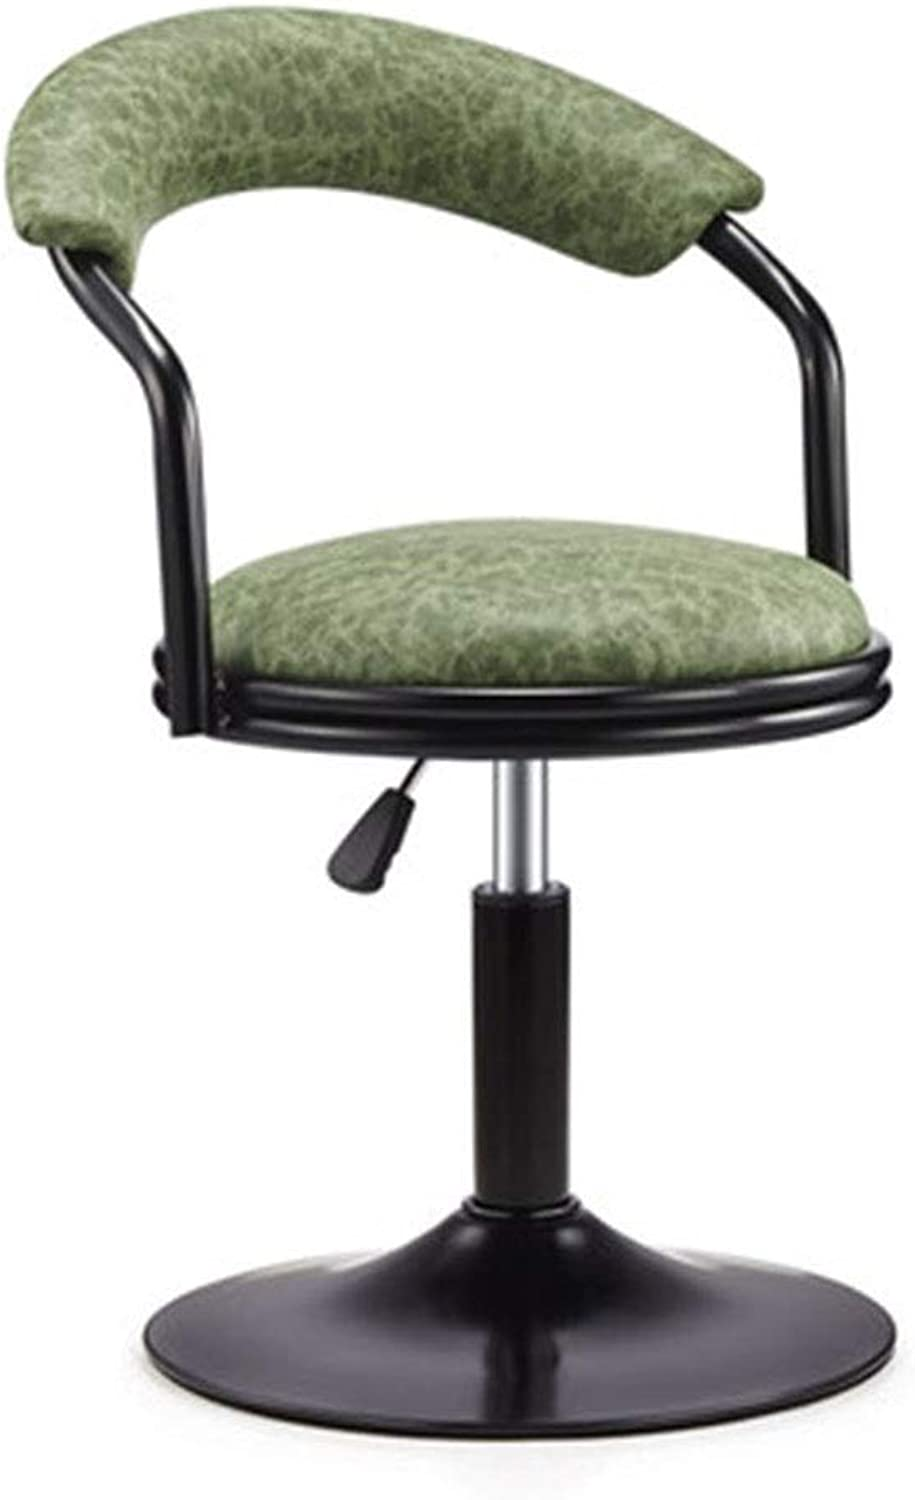 Bar Chair redate Chair Lift High Stool Modern Simple Back Home Reception Chair 4 colors 1 Size (color   A)